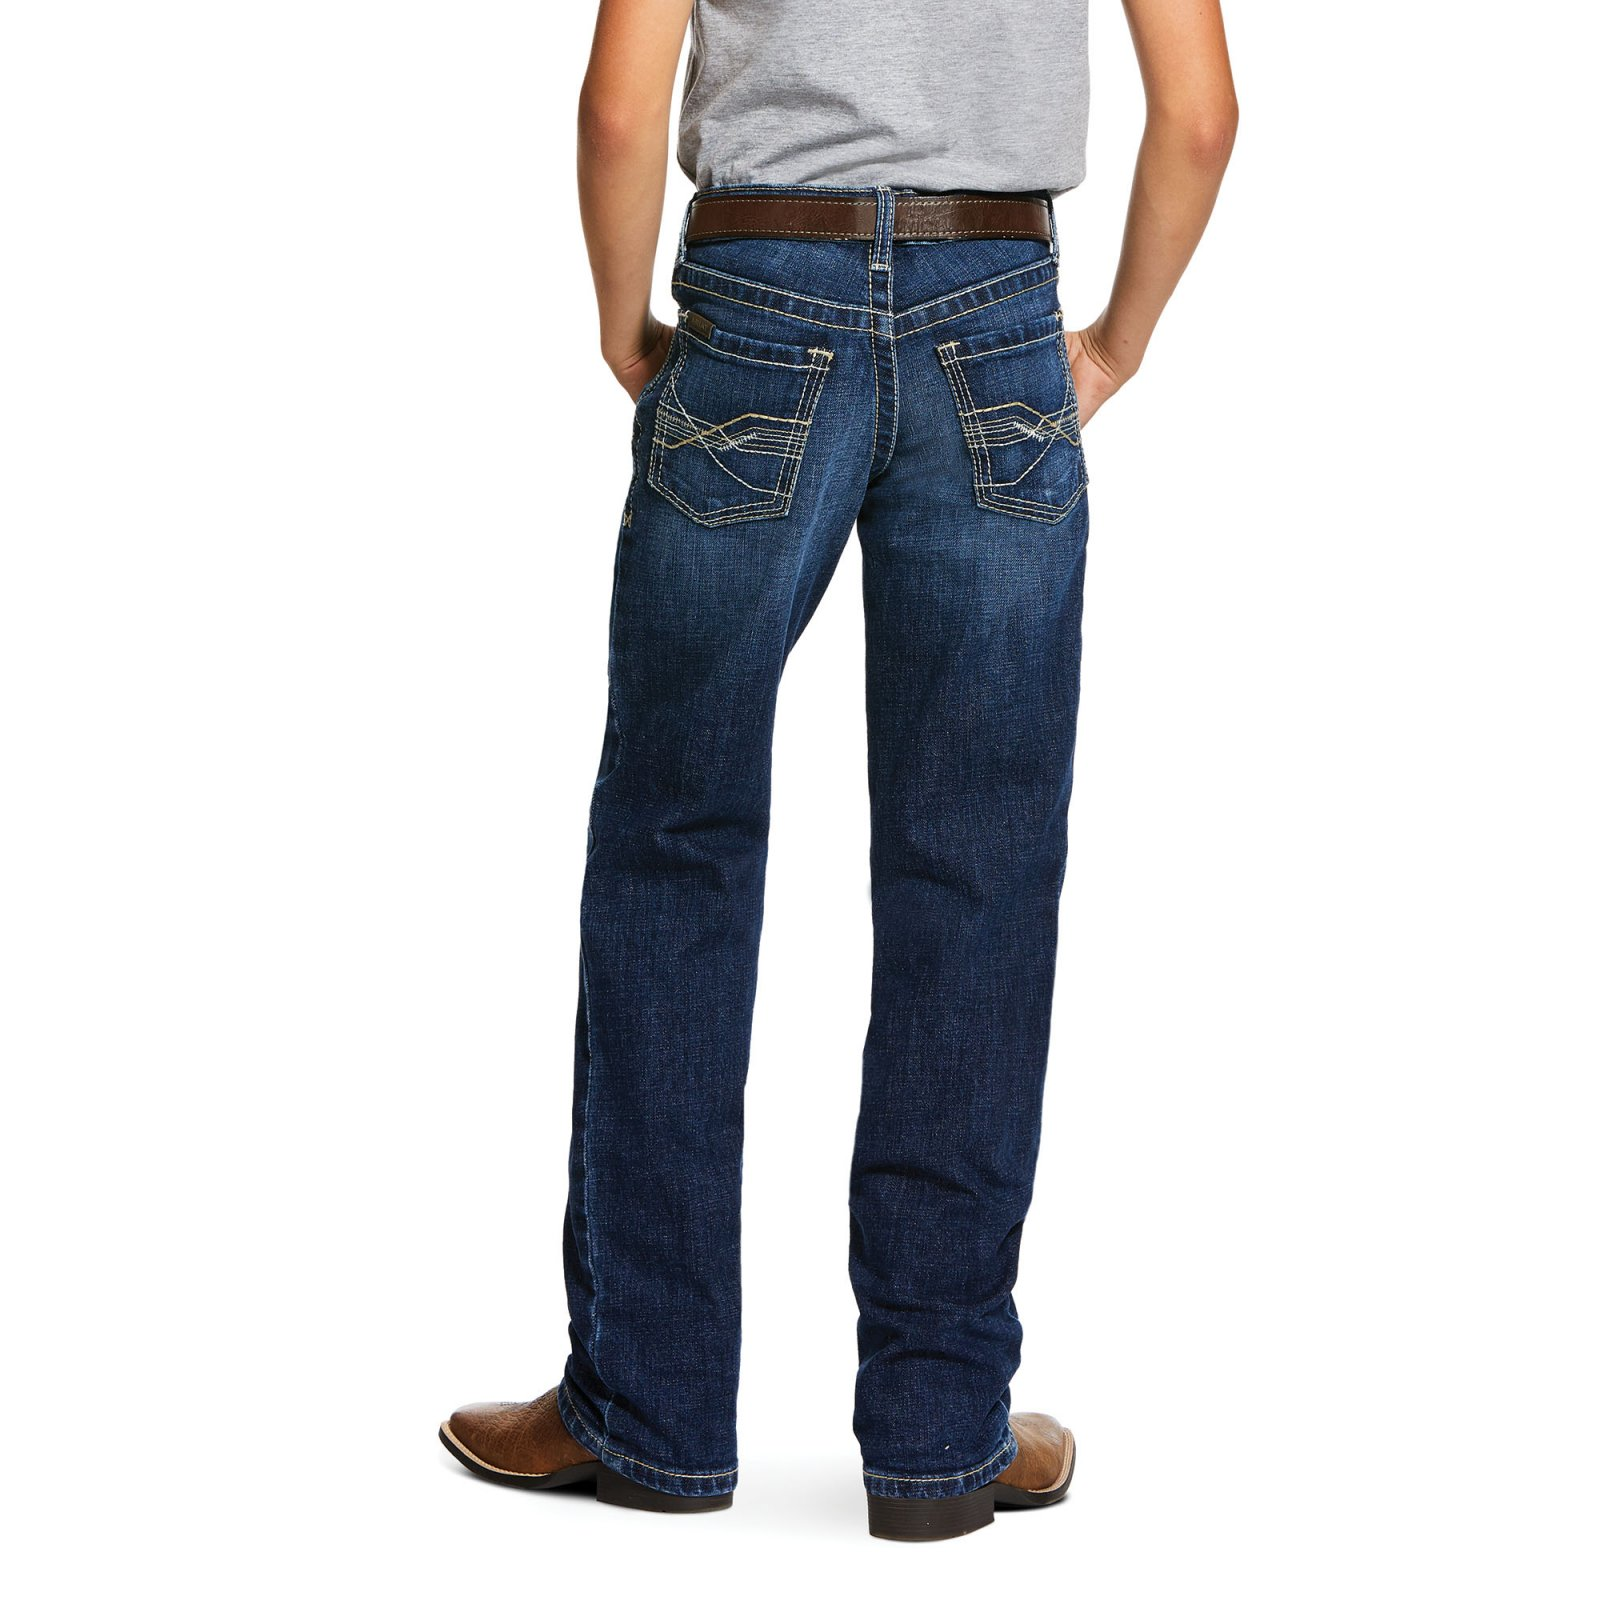 B5 Legacy Jean from Ariat